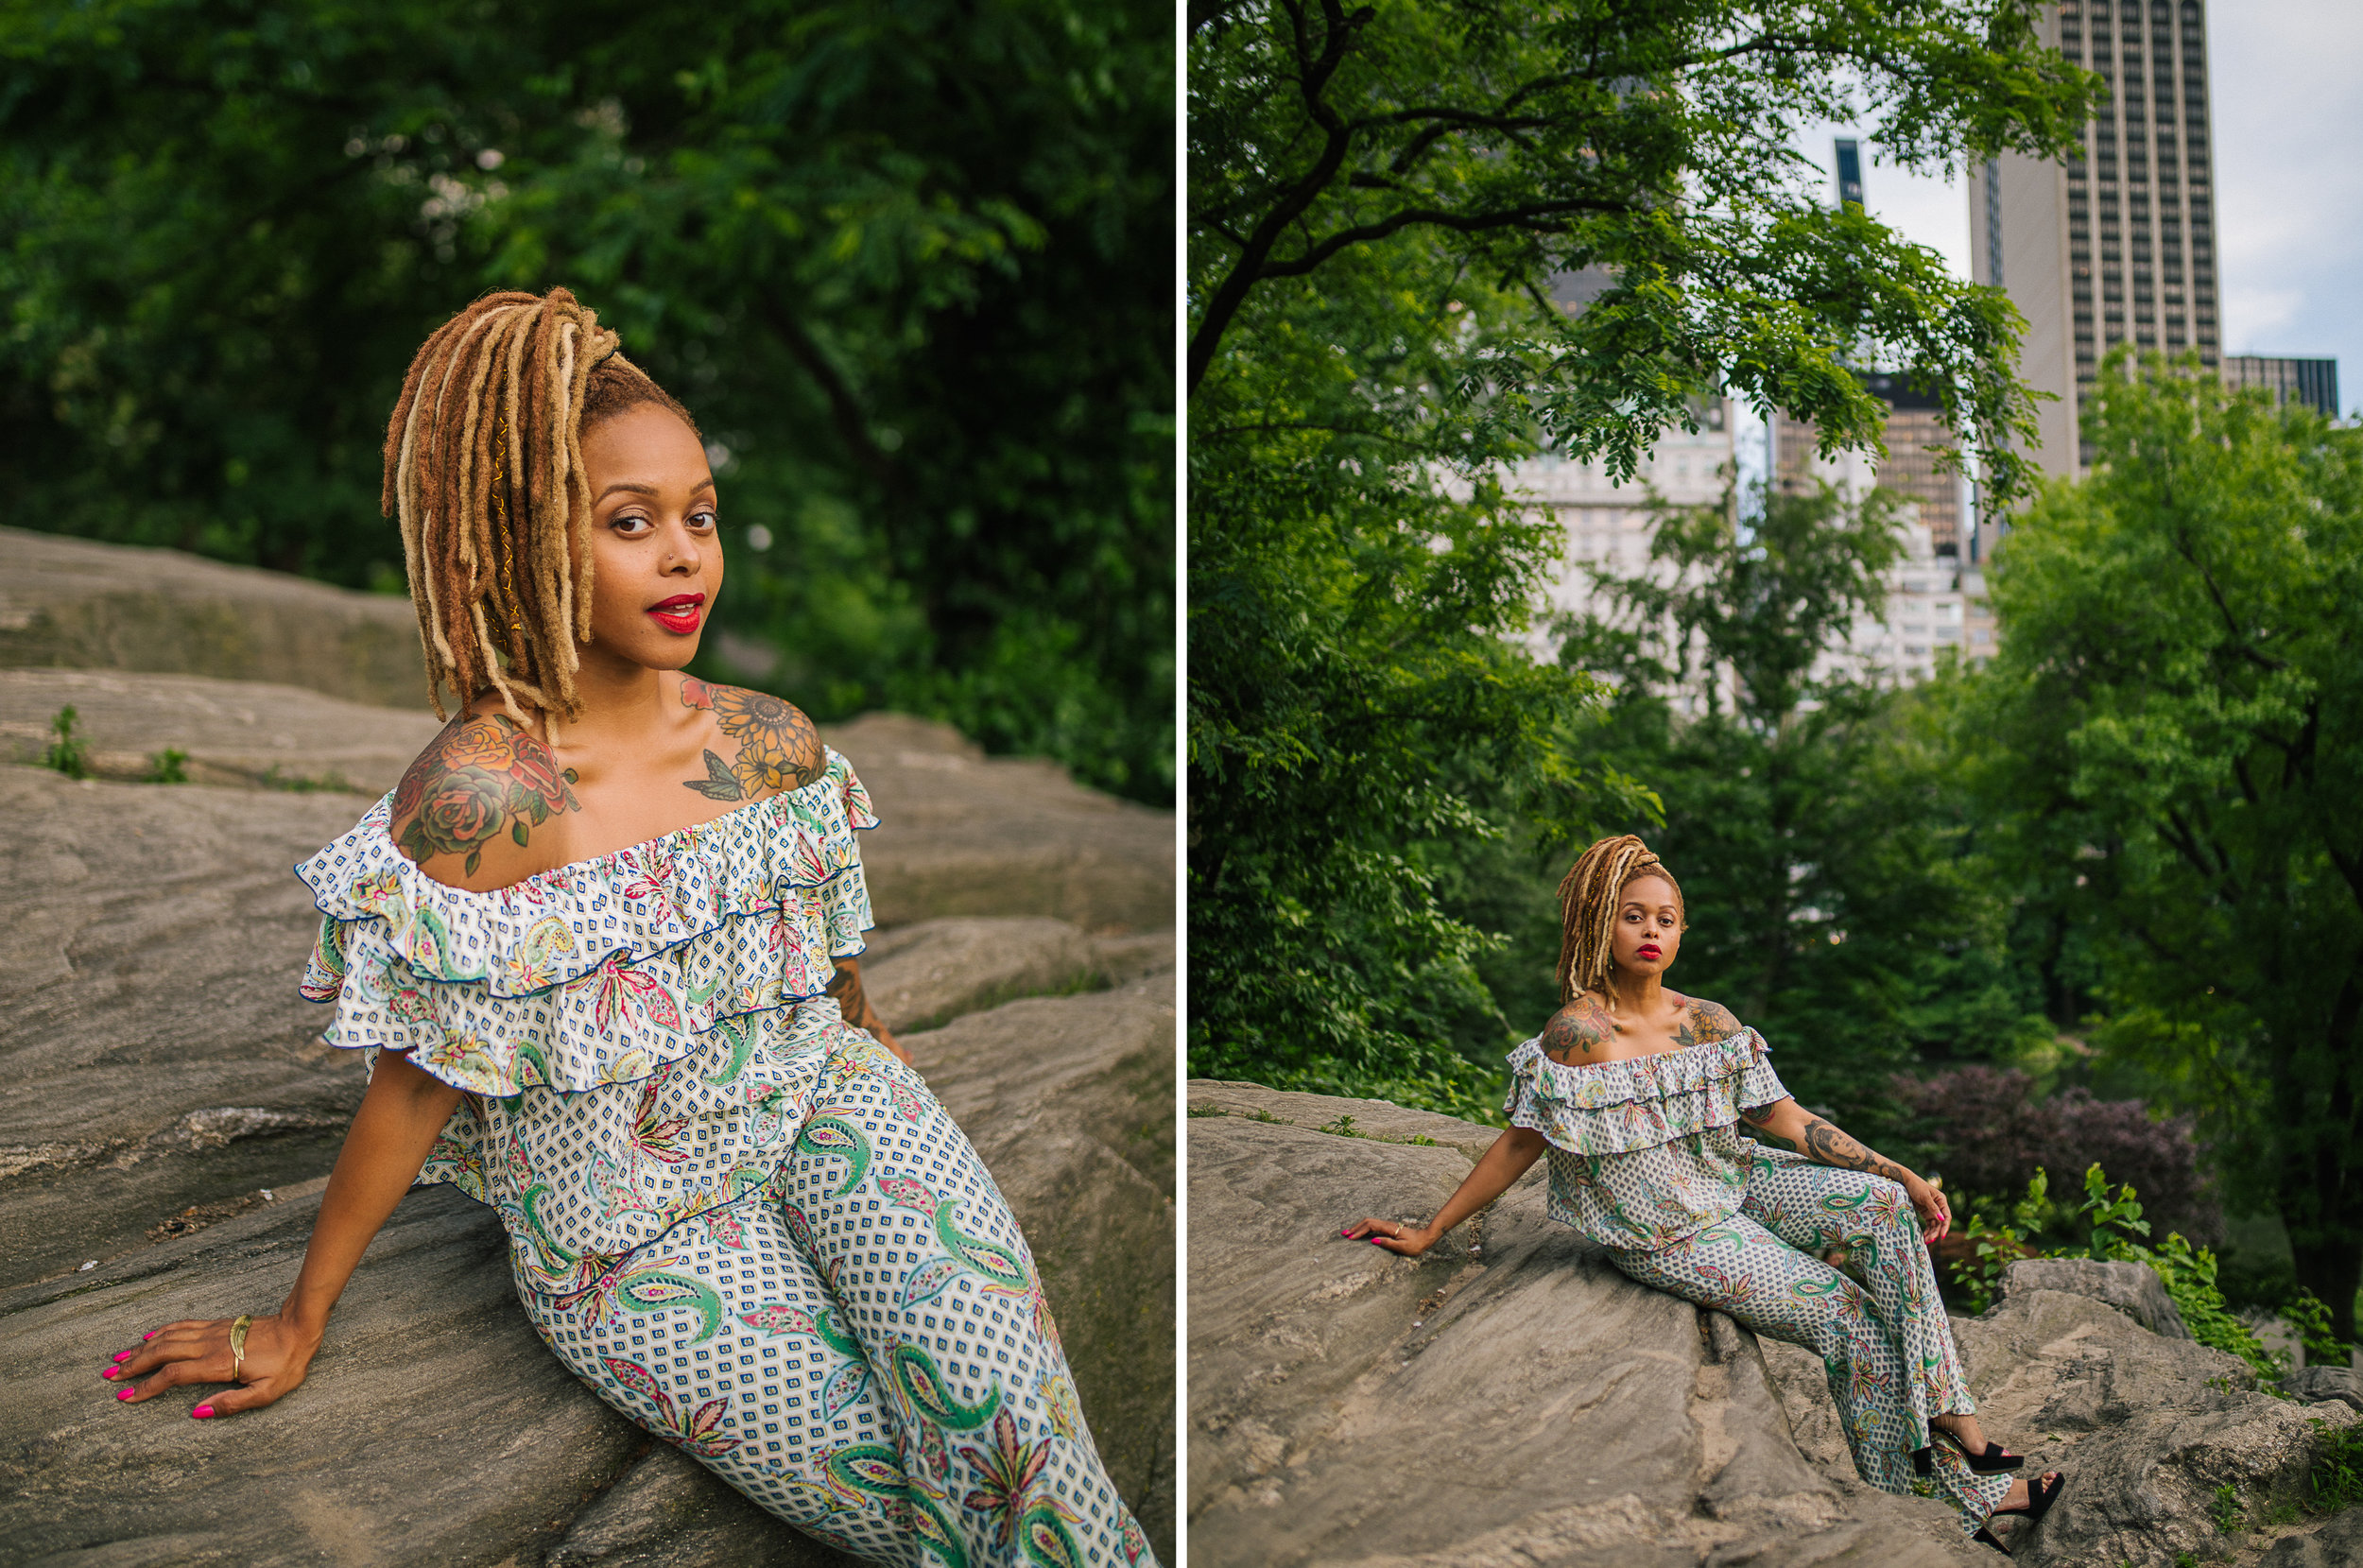 central_park_nyc_portraits_.jpg